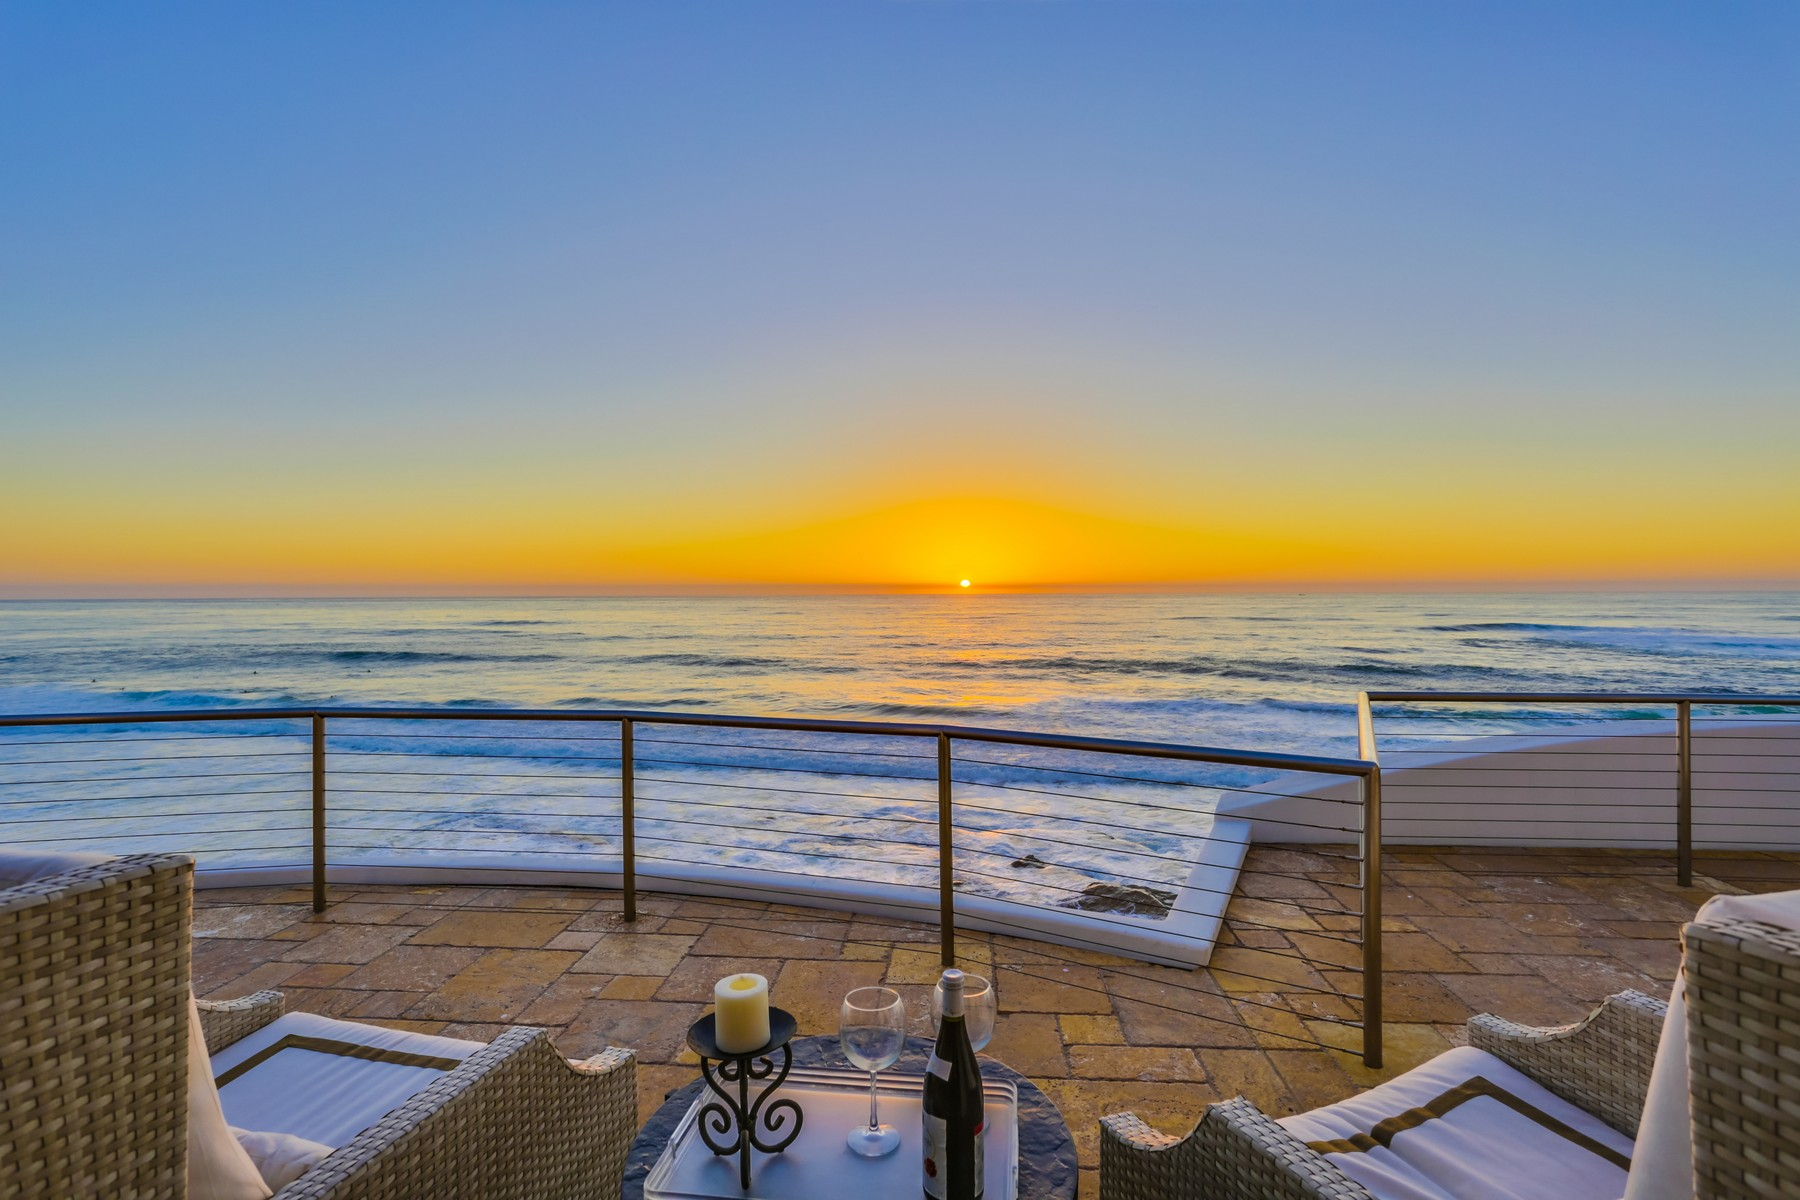 Single Family Home for Sale at 7400 Vista Del Mar La Jolla, California, 92037 United States